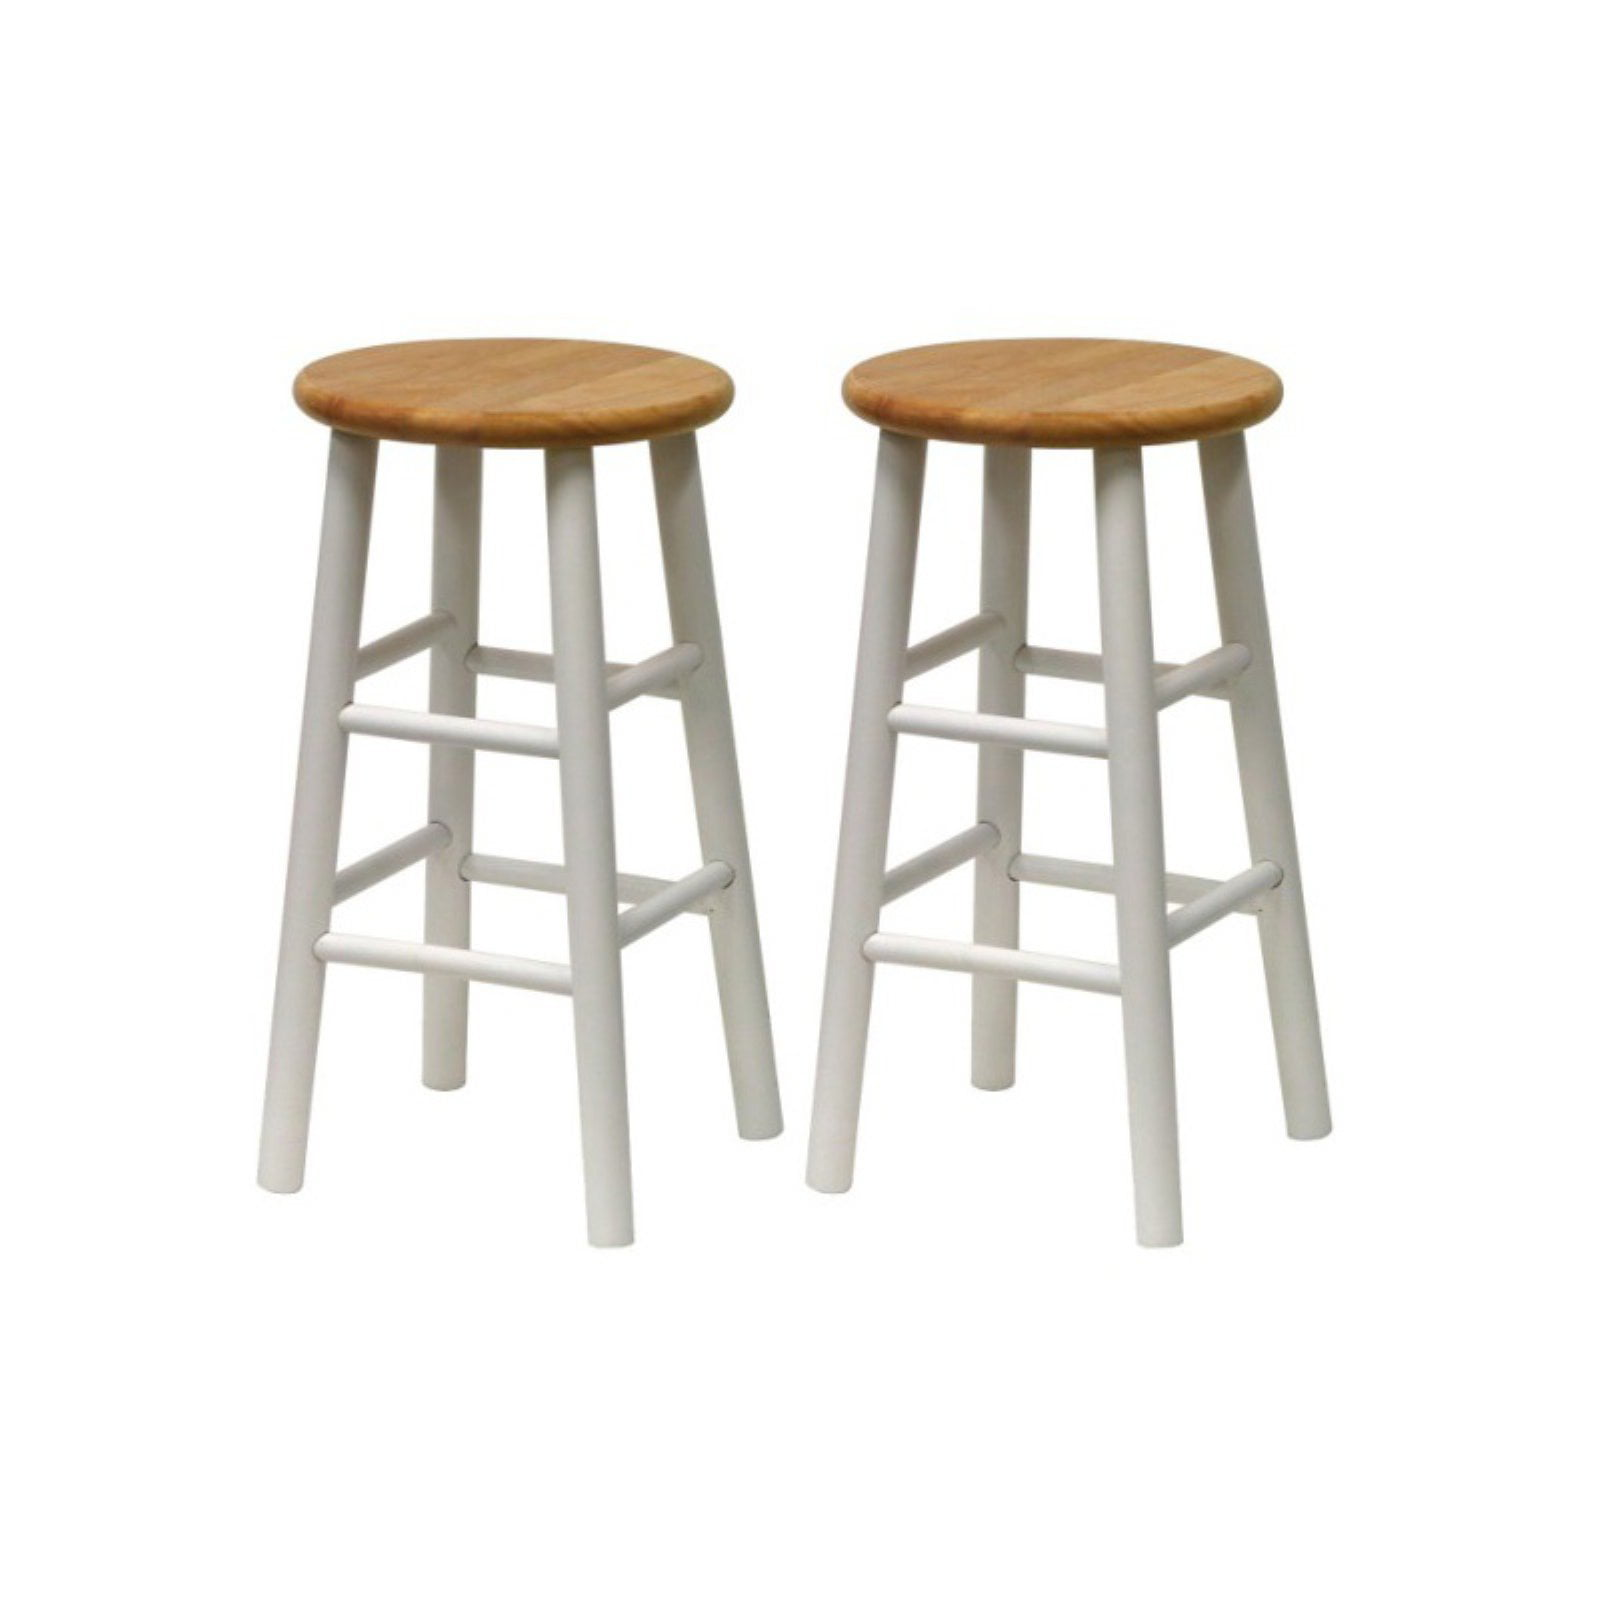 Fantastic Winsome Wood Tabby 24 Beveled Seat Stools 2Pc Multiple Finishes Pdpeps Interior Chair Design Pdpepsorg